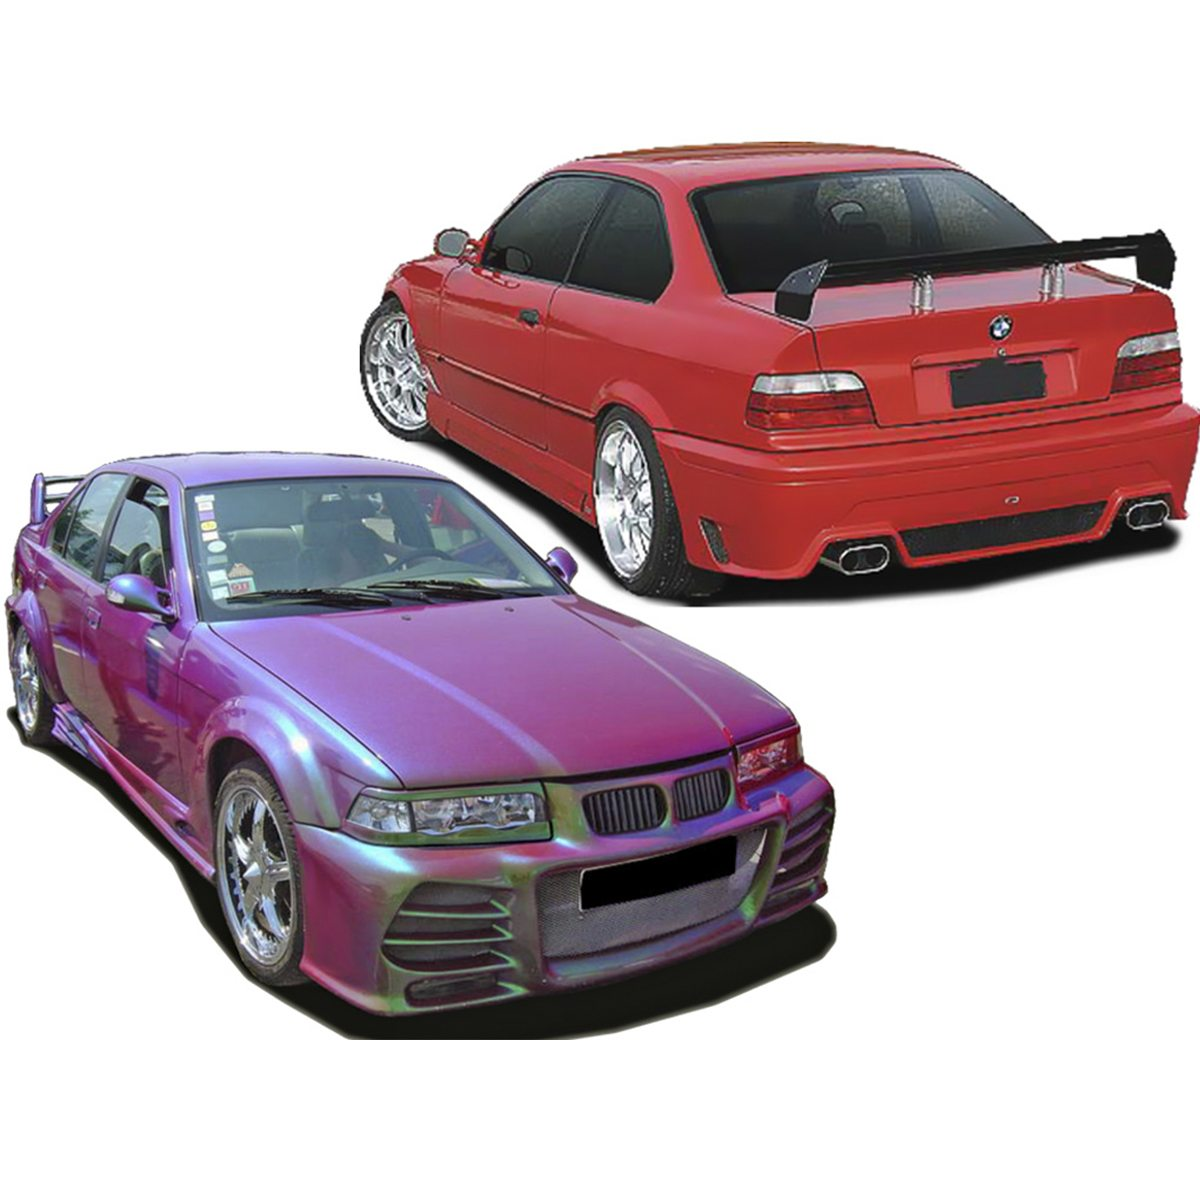 BMW-E36-Rocket-KIT-QTU076